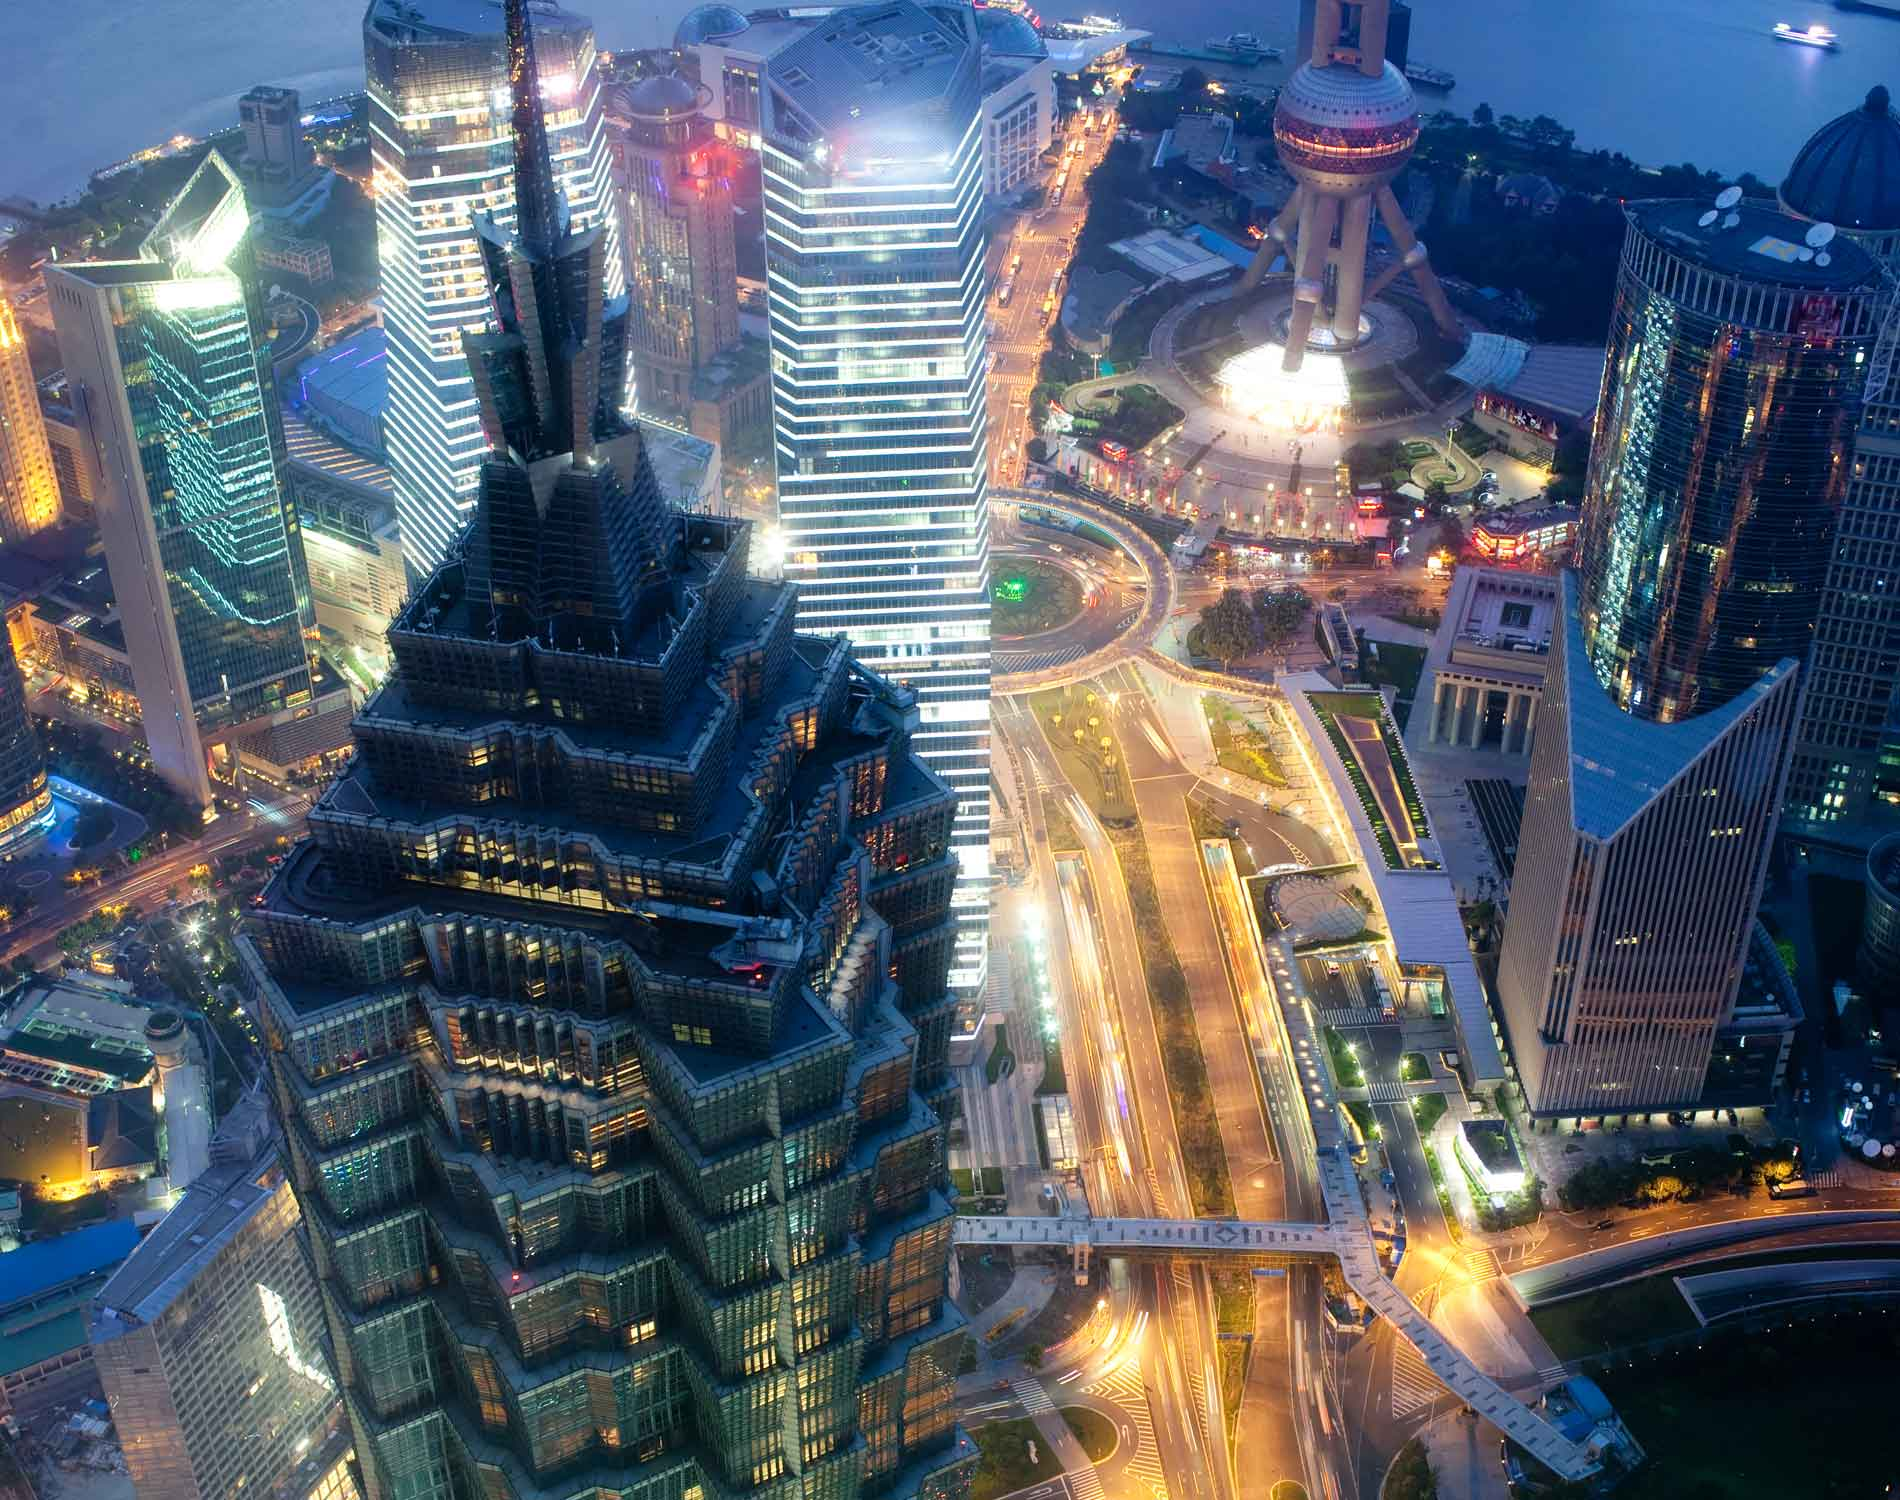 /~/media/Images/Website/Background%20Images/Offices/Shanghai/Shanghai%20Option%201.jpg